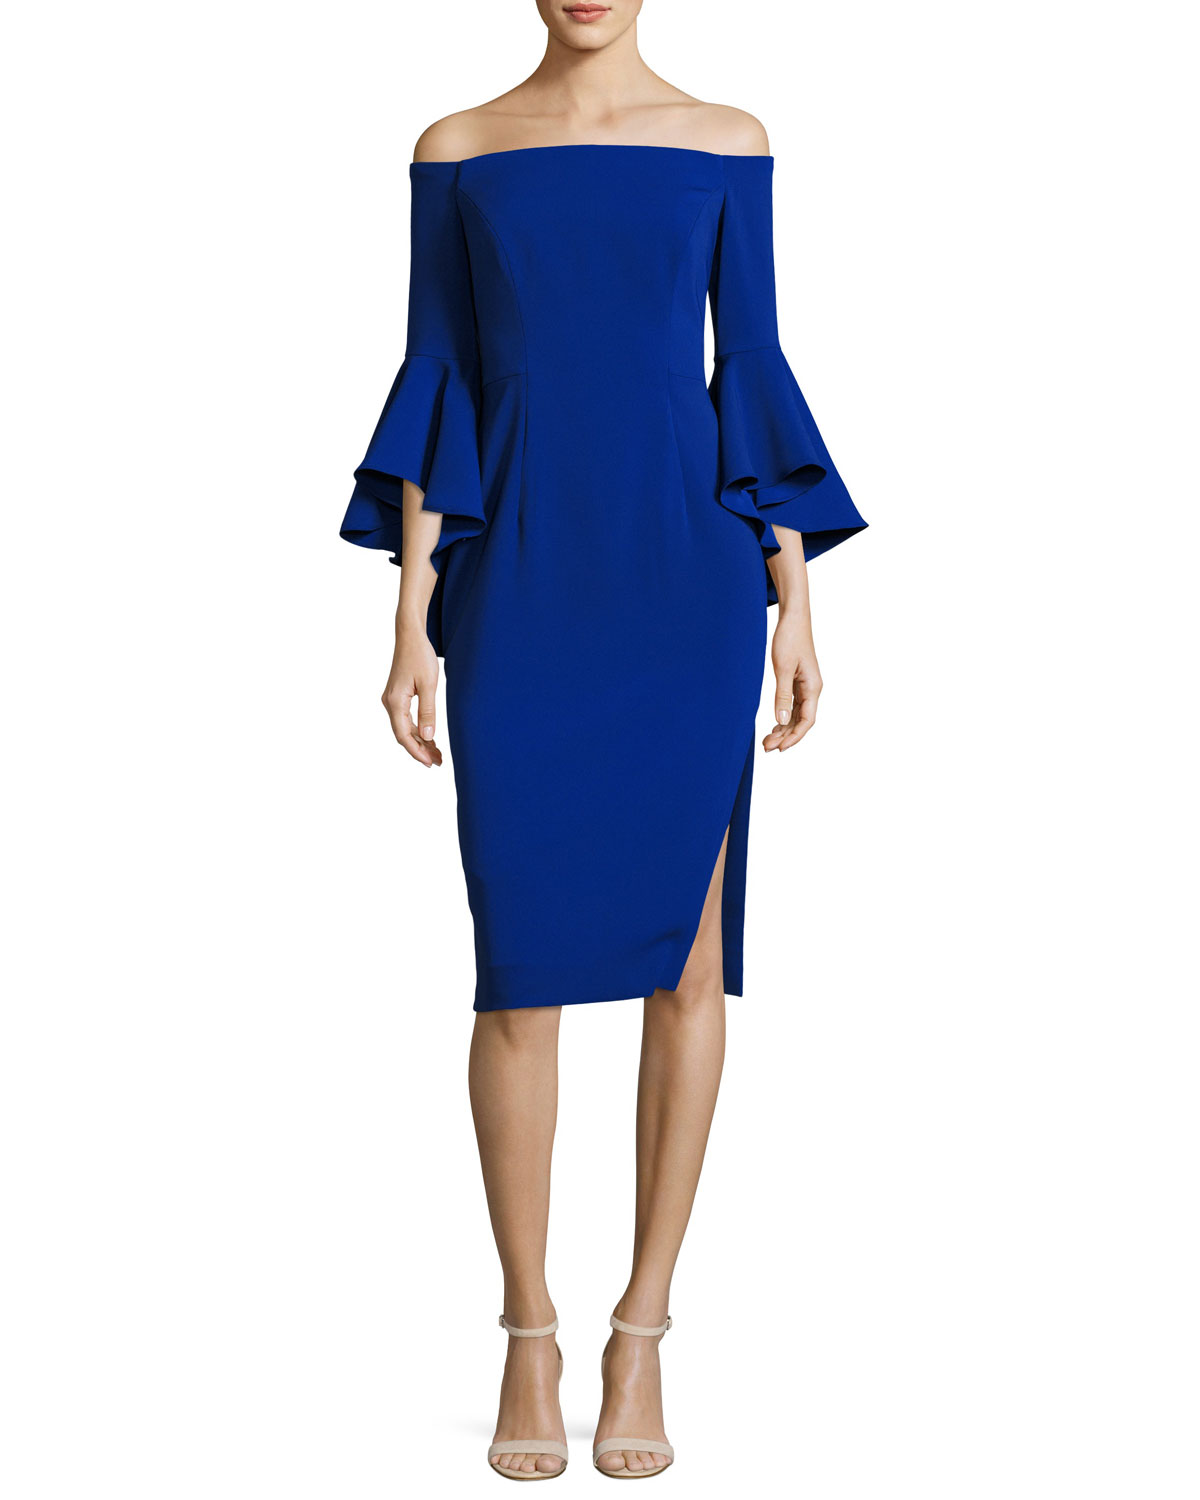 Milly Woman Off-the-shoulder Cady Mini Dress Cobalt Blue Size 6 Milly hRmbJ